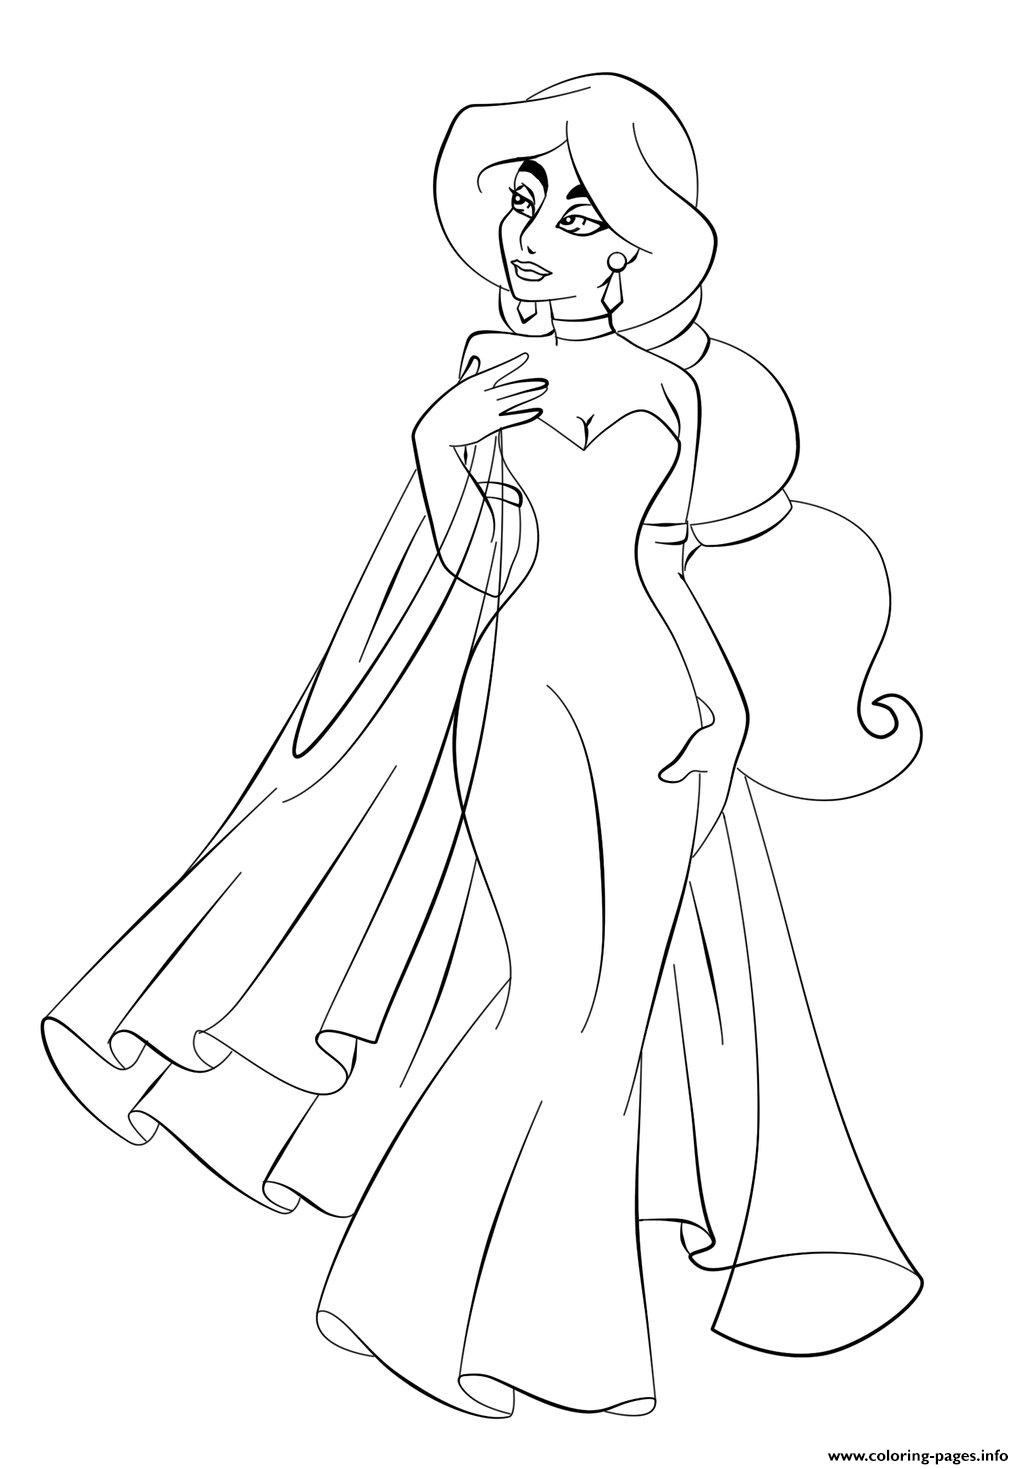 Coloring Pages Of Princess Dresses